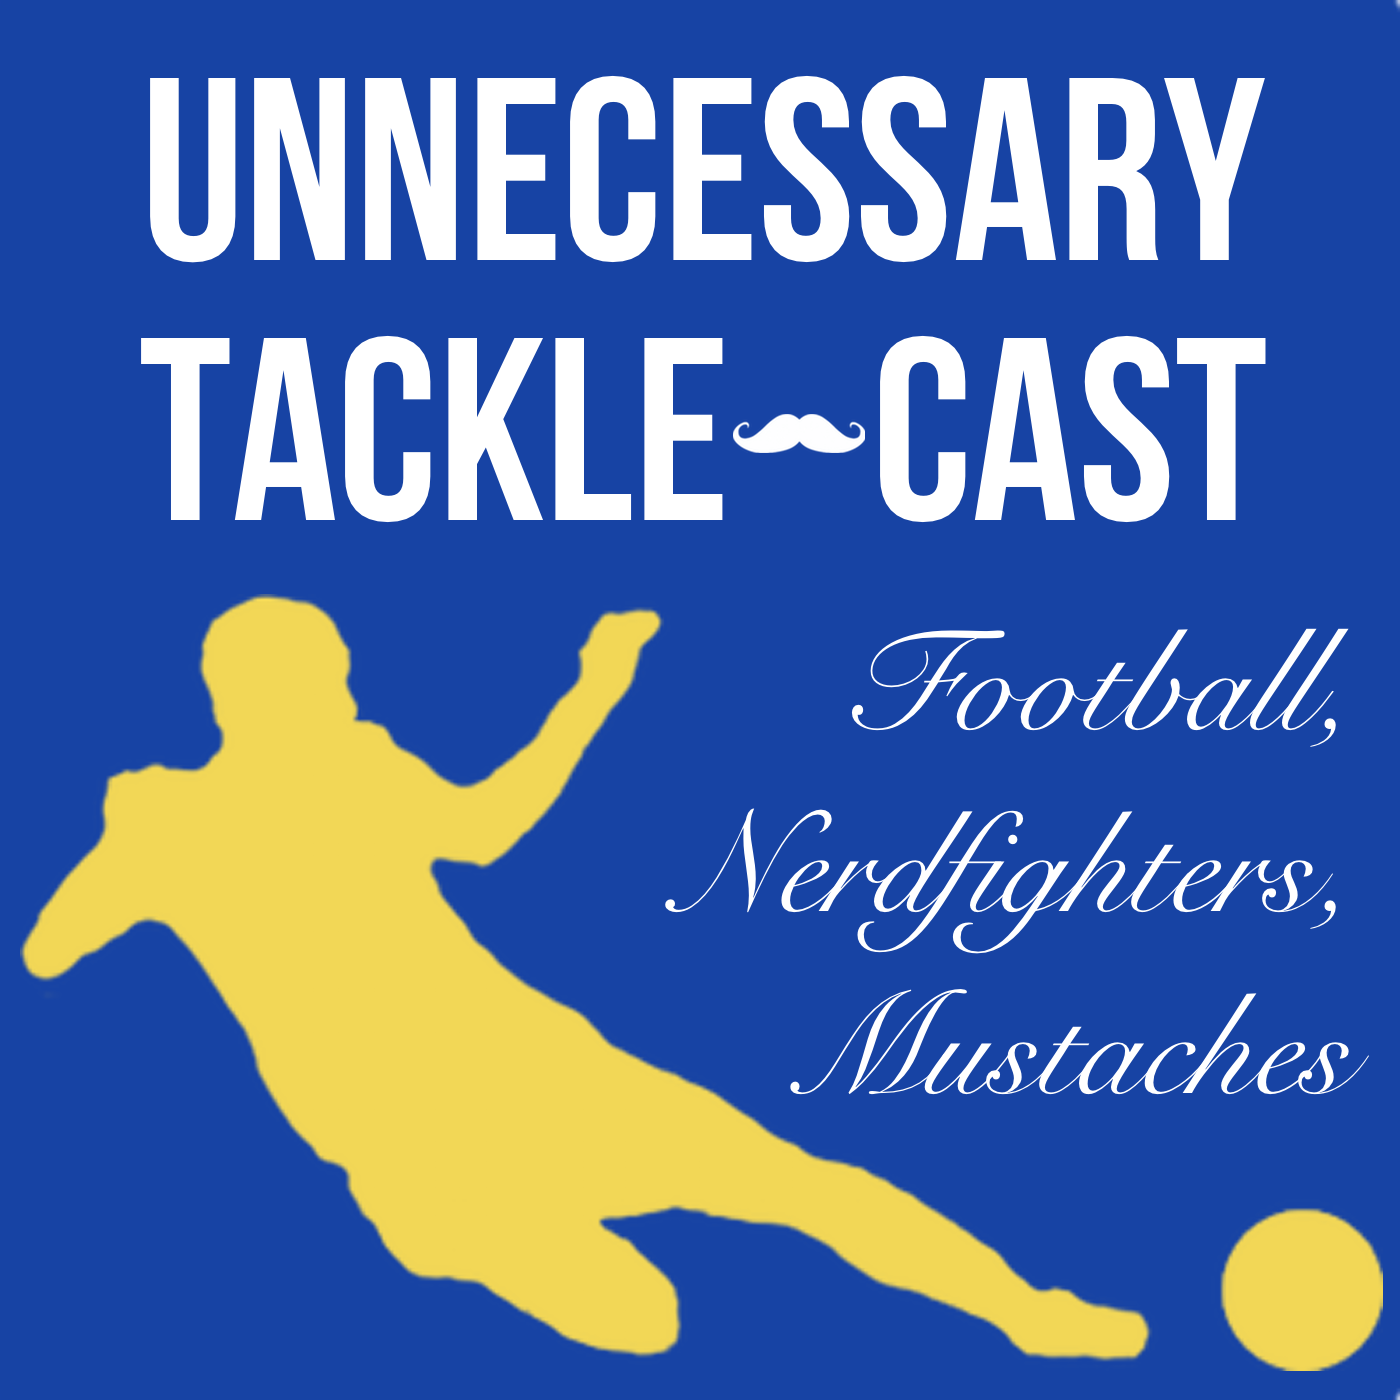 Unnecessary Tackle-Cast